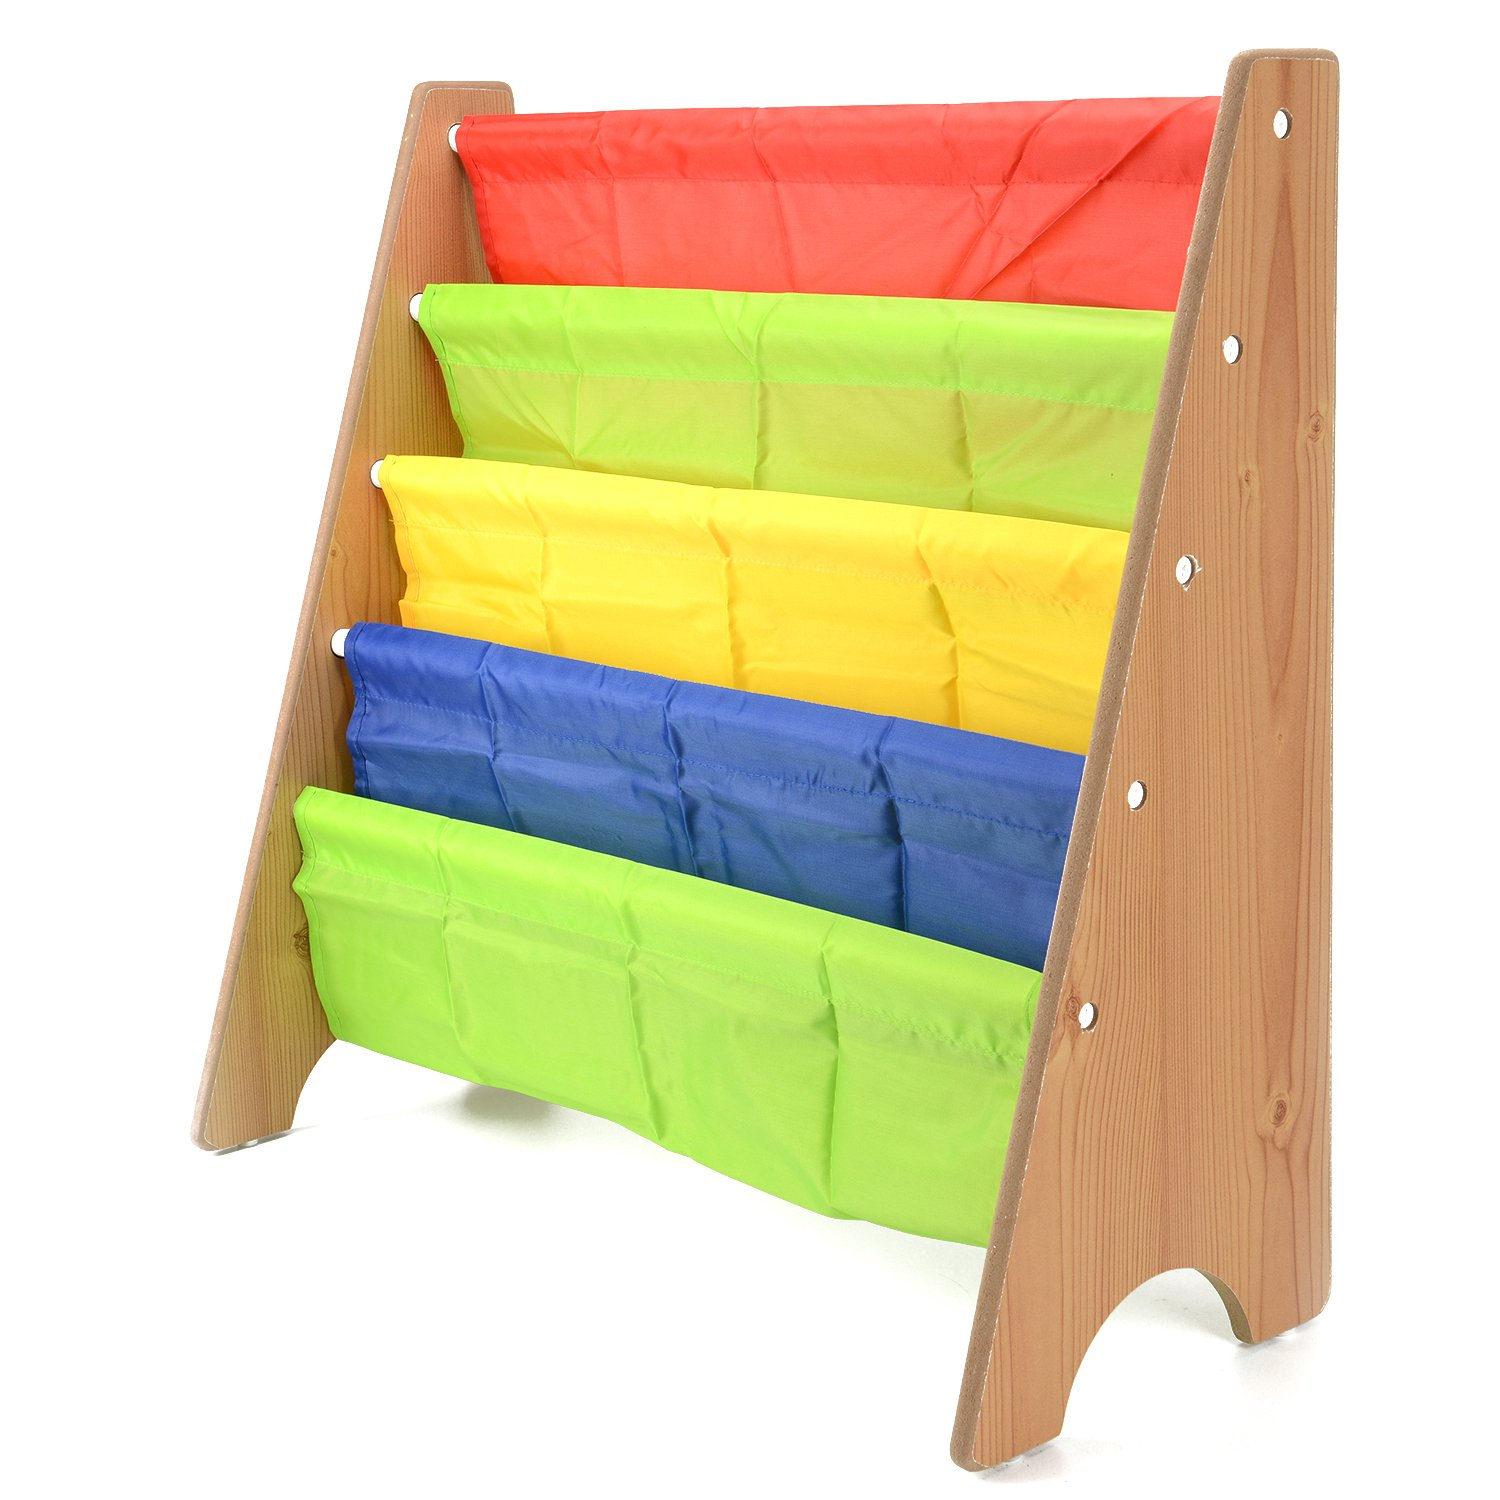 AllRight Kids Fun Book Shelf Bookcases Colourful Wood Sling Book Display Storage Rack for Children Bedroom Black oem